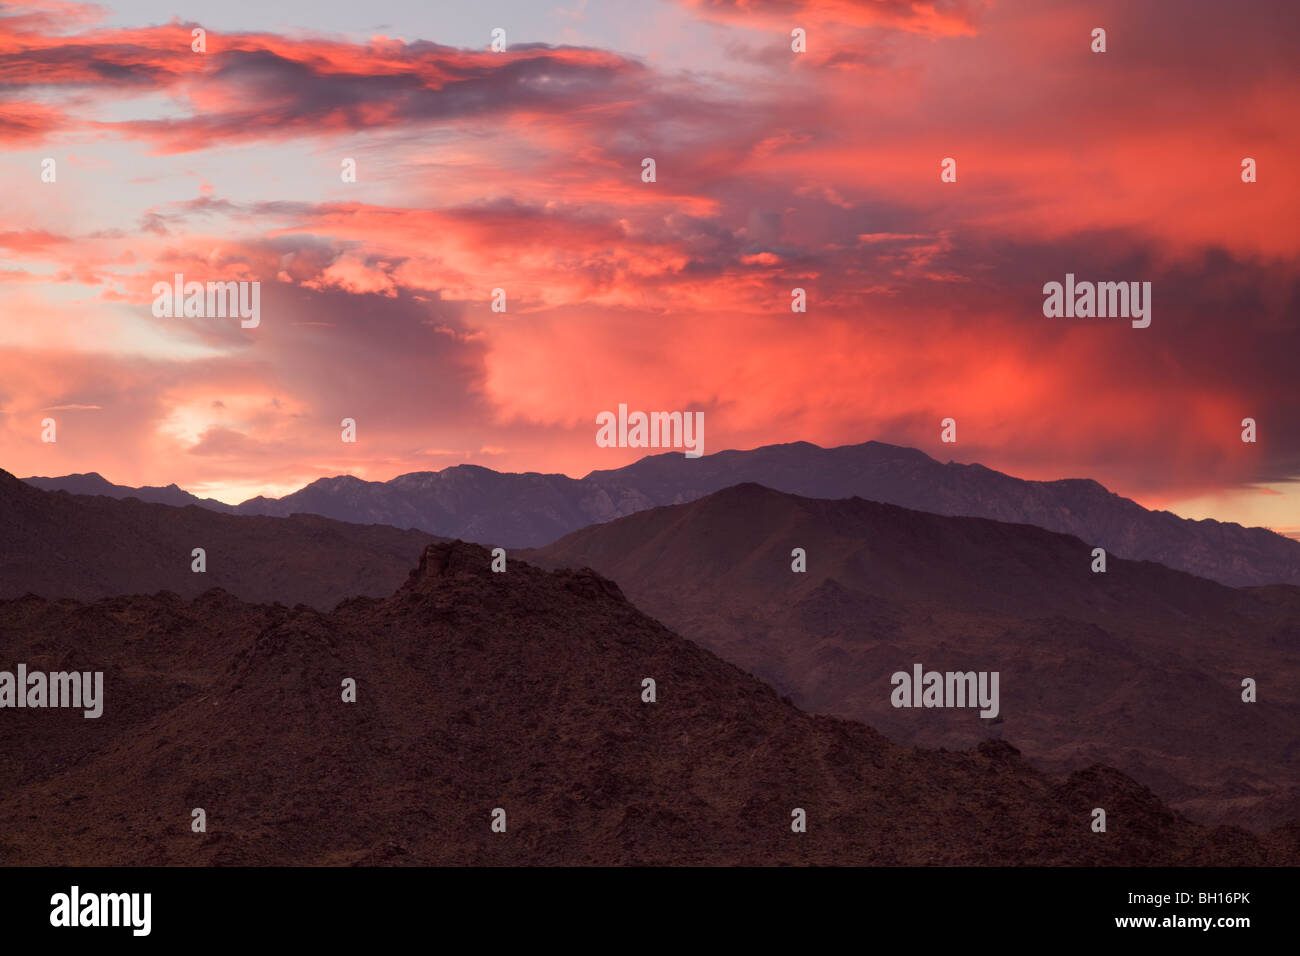 Sunset over the San Jacinto Mountains from Palm Desert and the Coachella Valley, California. - Stock Image